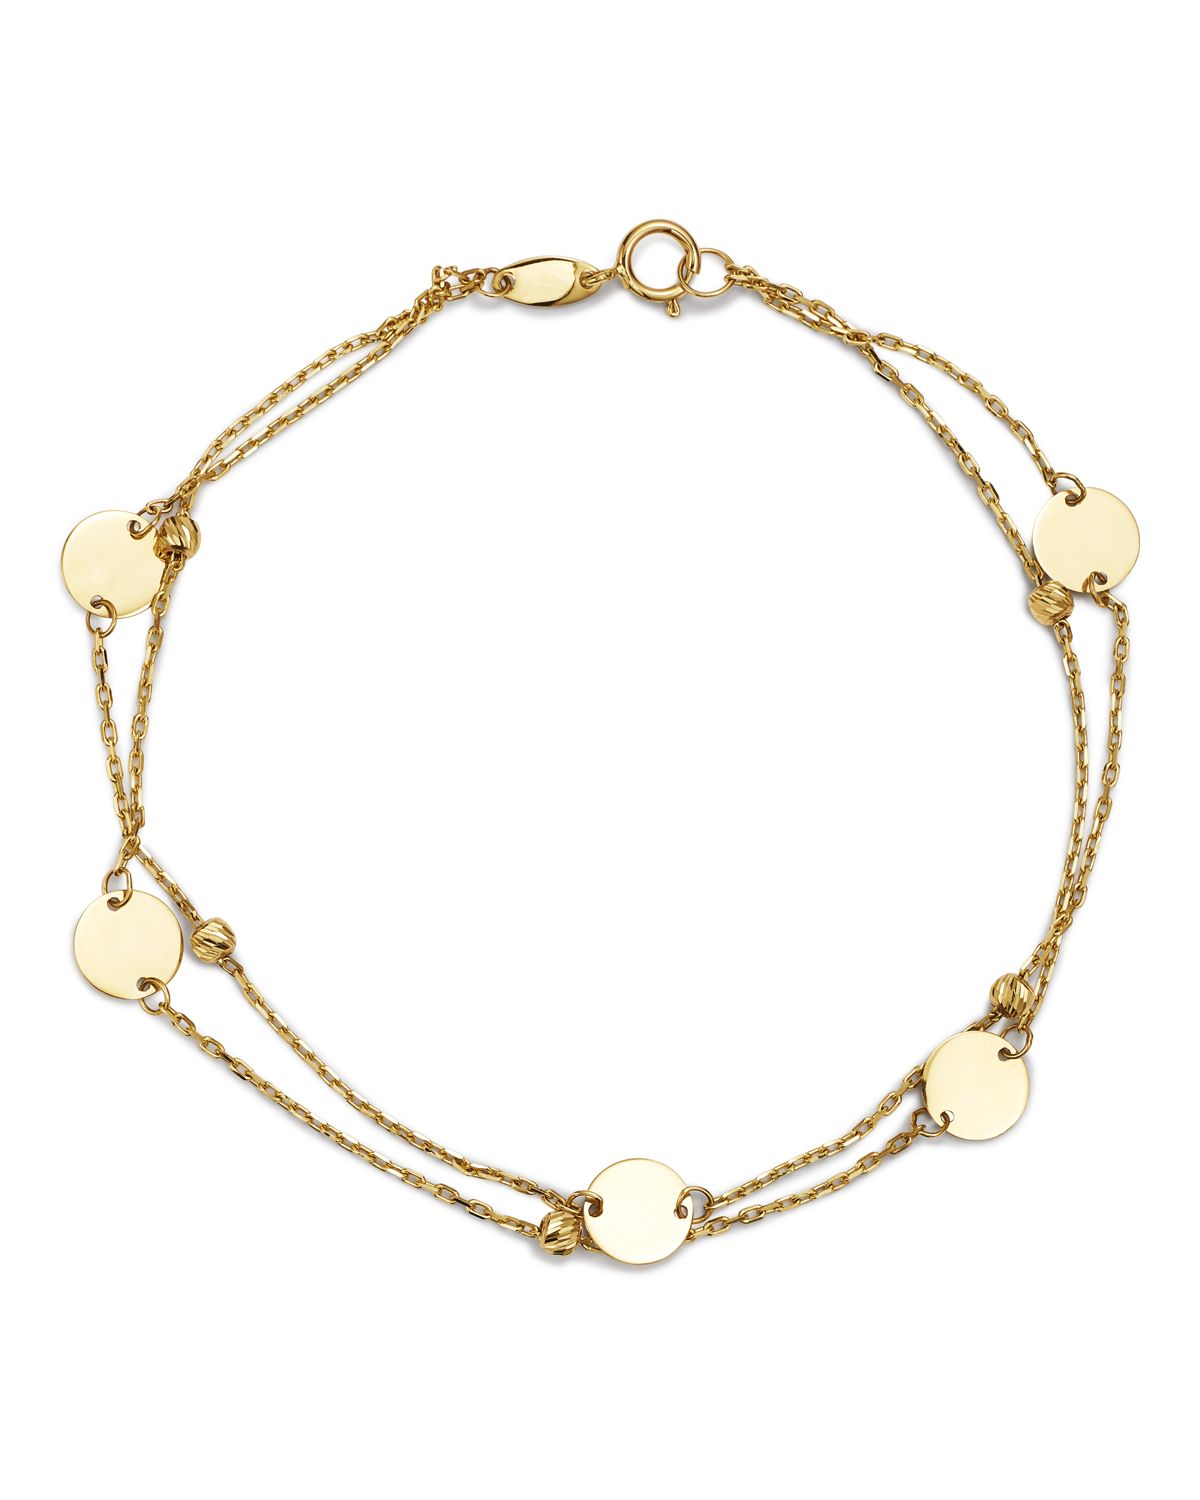 Layered Disc & Bead Bracelet In 14 K Yellow Gold   100% Exclusive  by Moon &Amp; Meadow